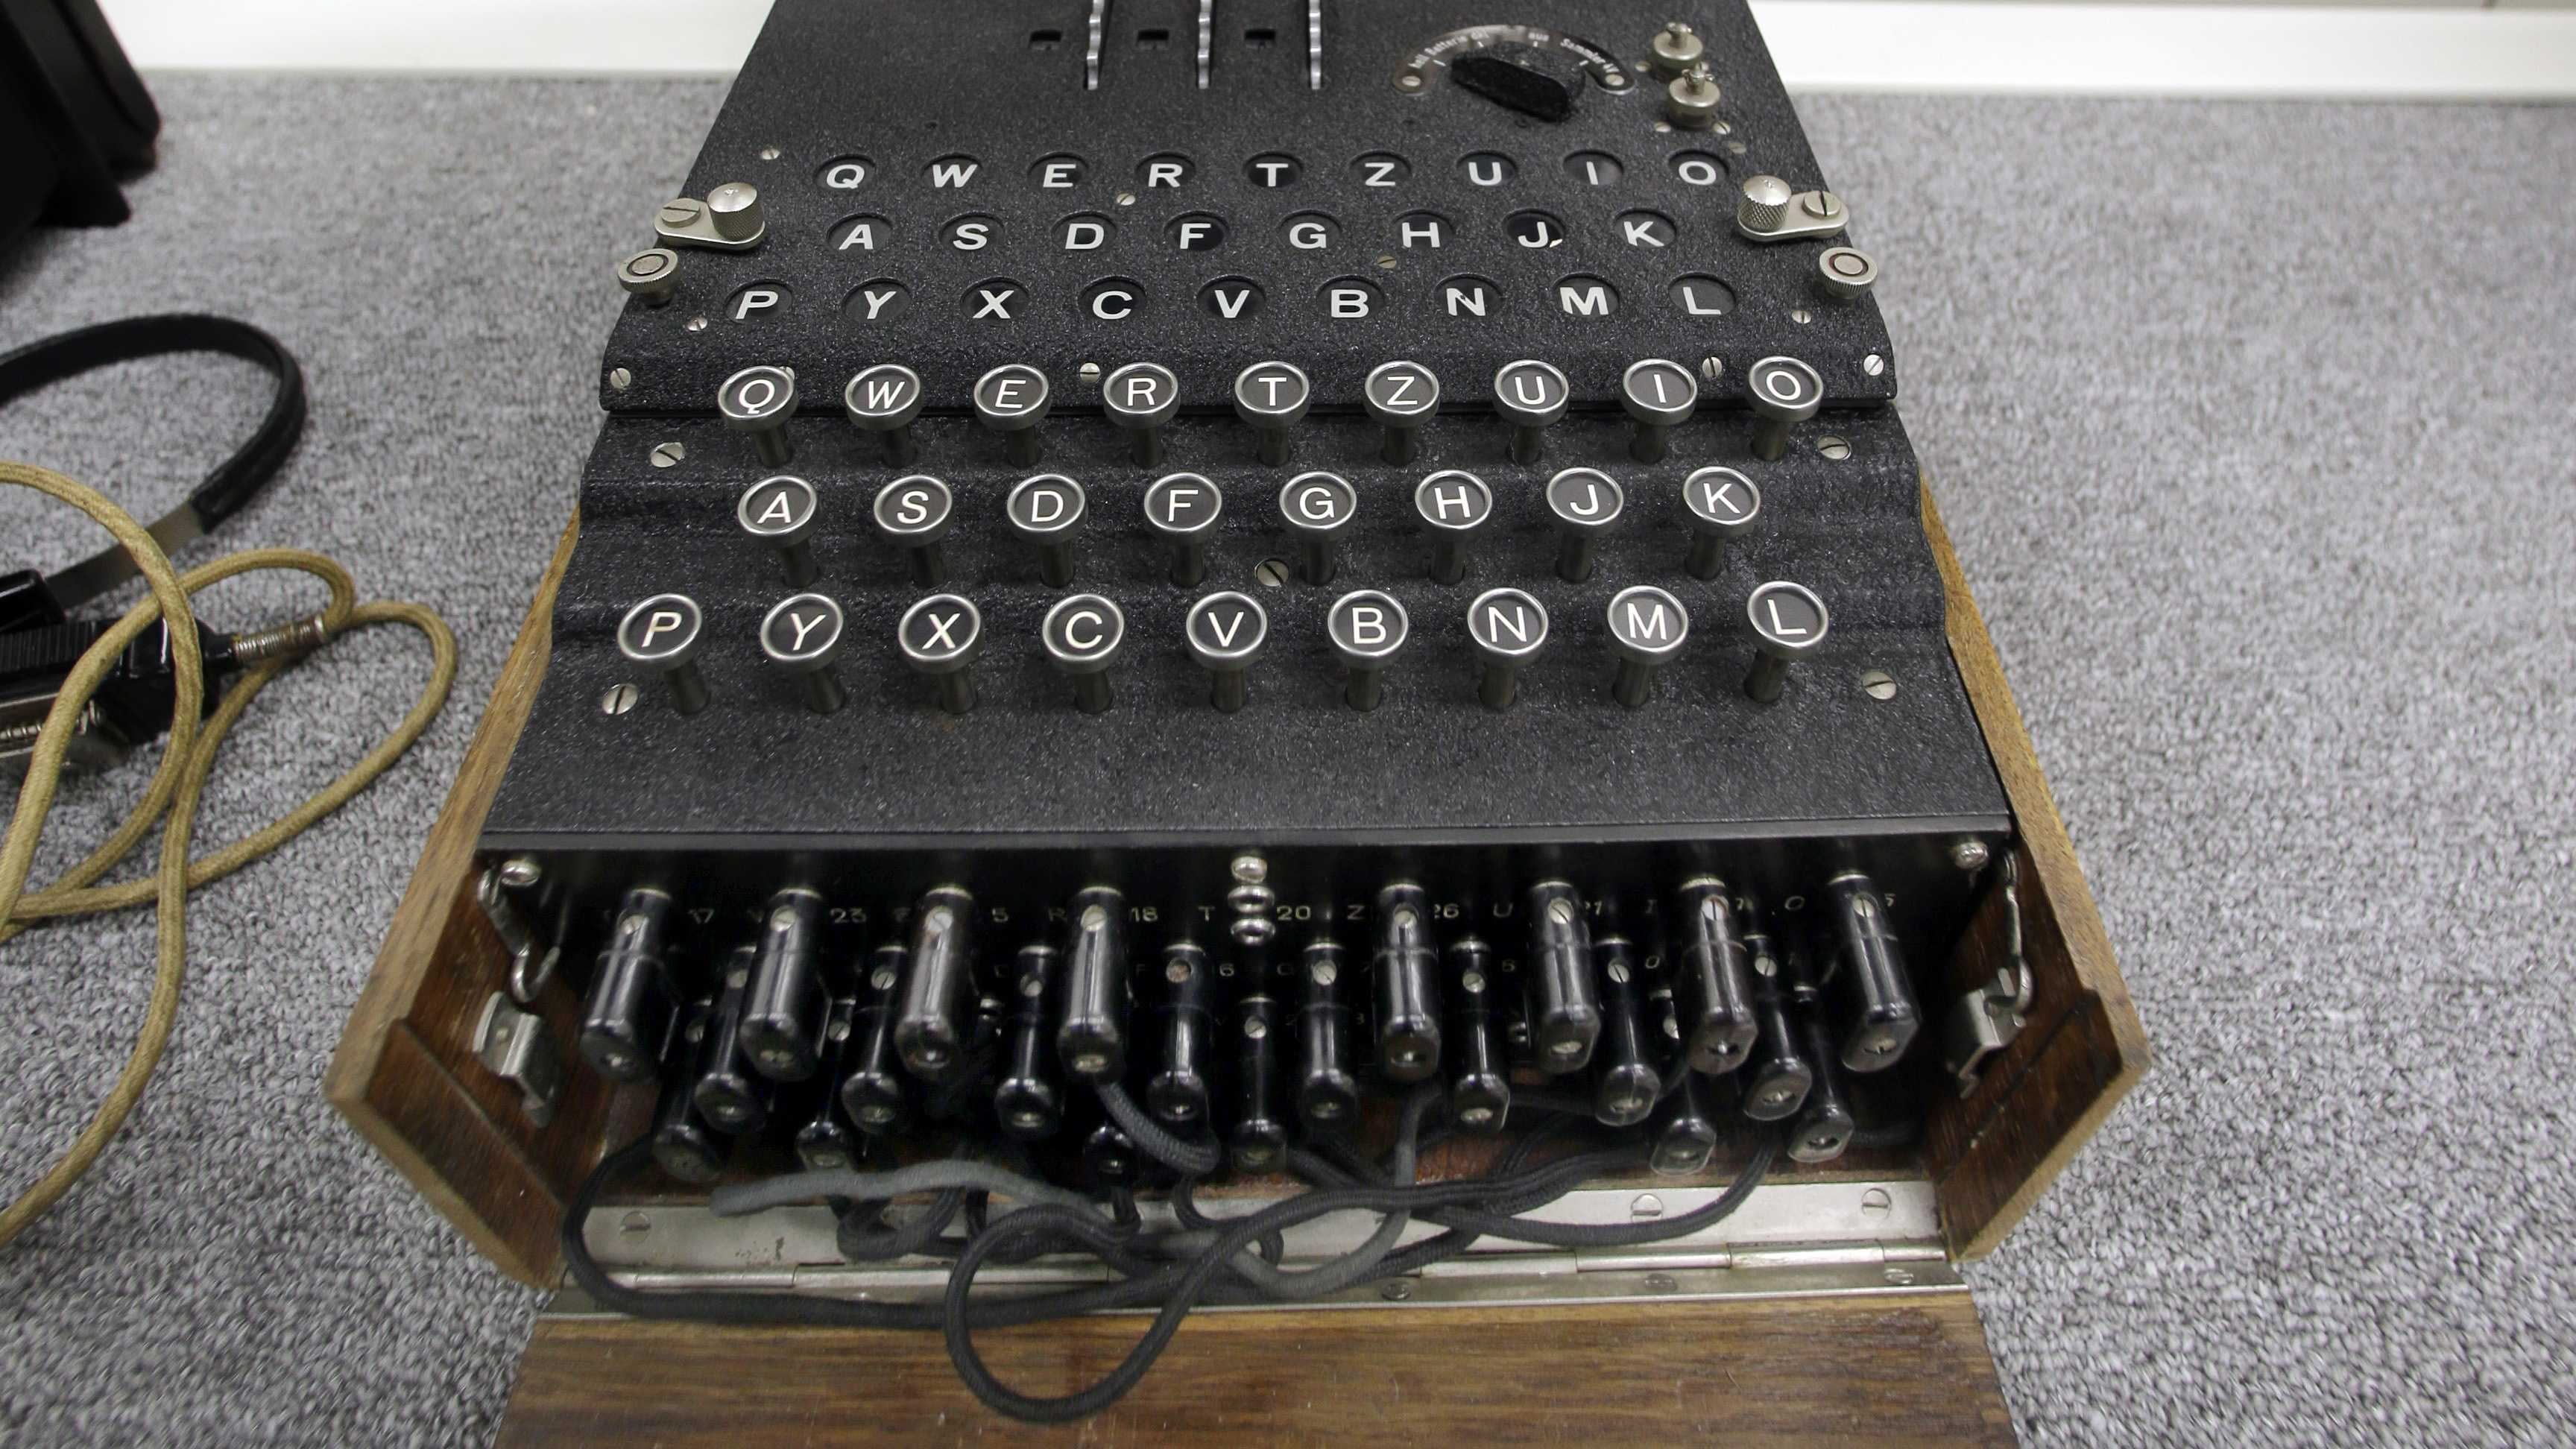 "A Nazi Enigma encryption machine is displayed at the World War II Museum in Natick, Mass., Wednesday, Feb. 18, 2015. In the Oscar-nominated film ""The Imitation Game,"" Benedict Cumberbatch leads a code-breaking operation targeting the Nazis' infamous Enigma encryption machines. The obscure suburban Boston museum boasts the largest U.S. collection of Enigmas outside of the NSA."